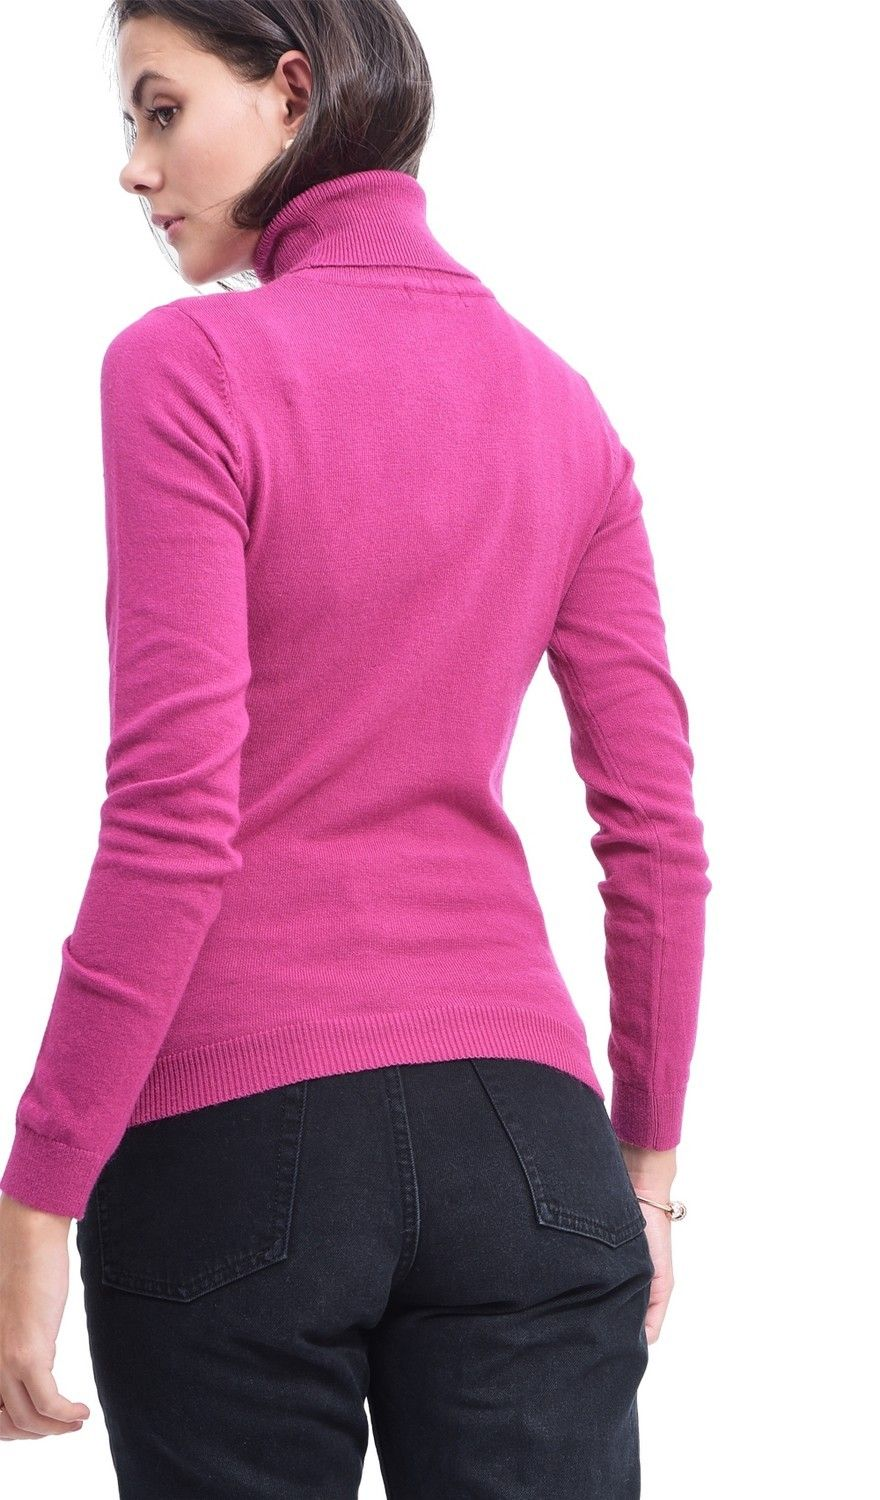 Assuili Turtleneck Sweater in Fuschia